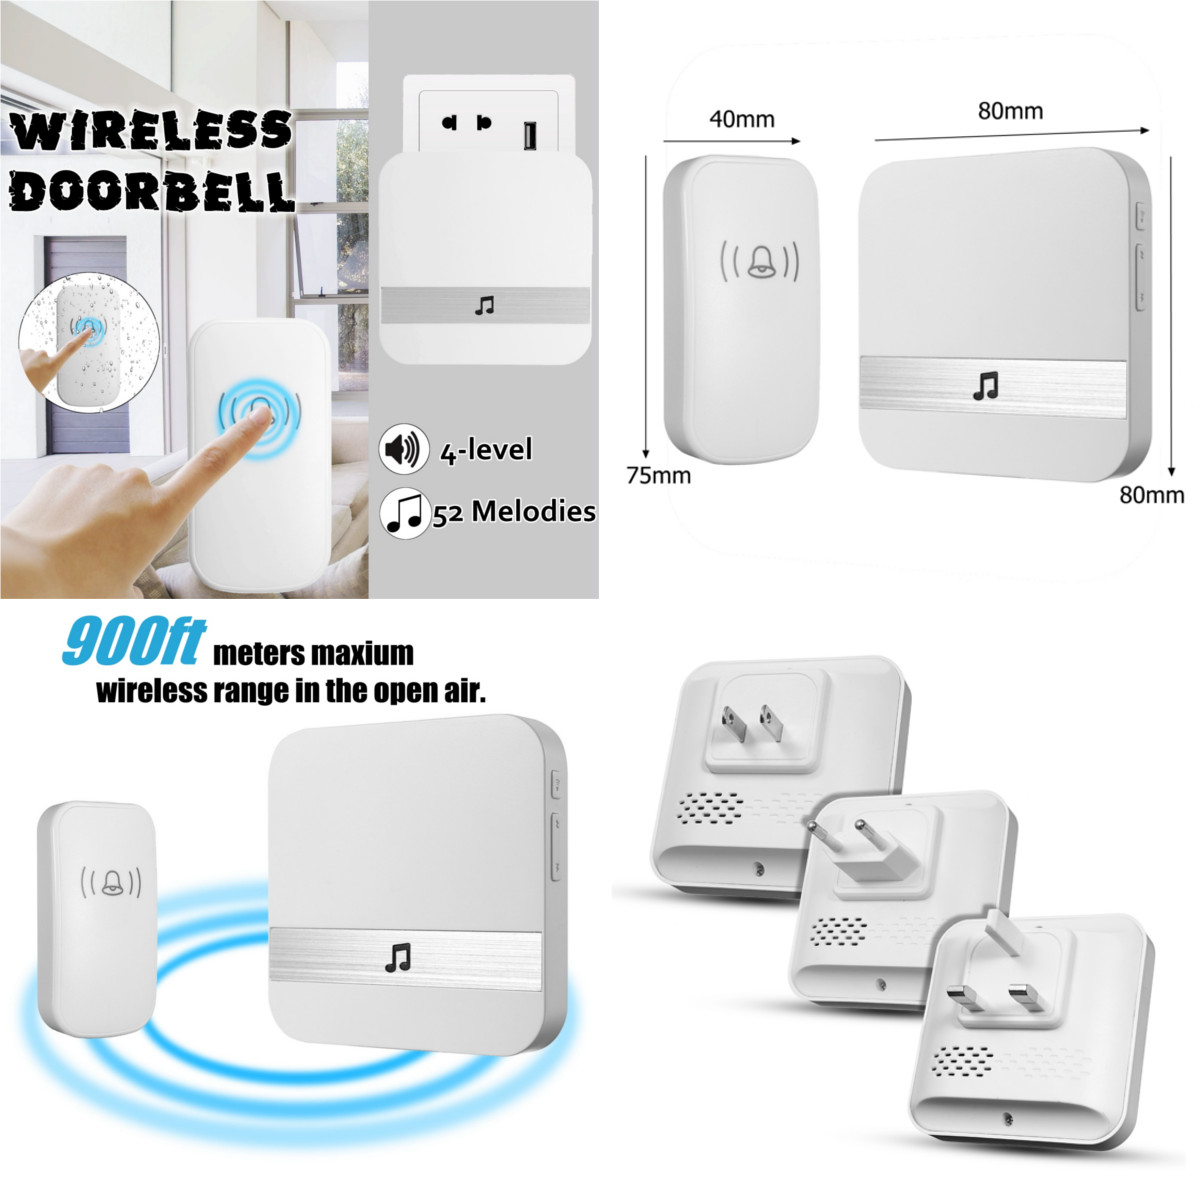 300M Waterproof LED Wireless Doorbell EU/US/UK Plug 52 Songs Chime Door Bell 1 Receiver 1 Button материал укрывной суф